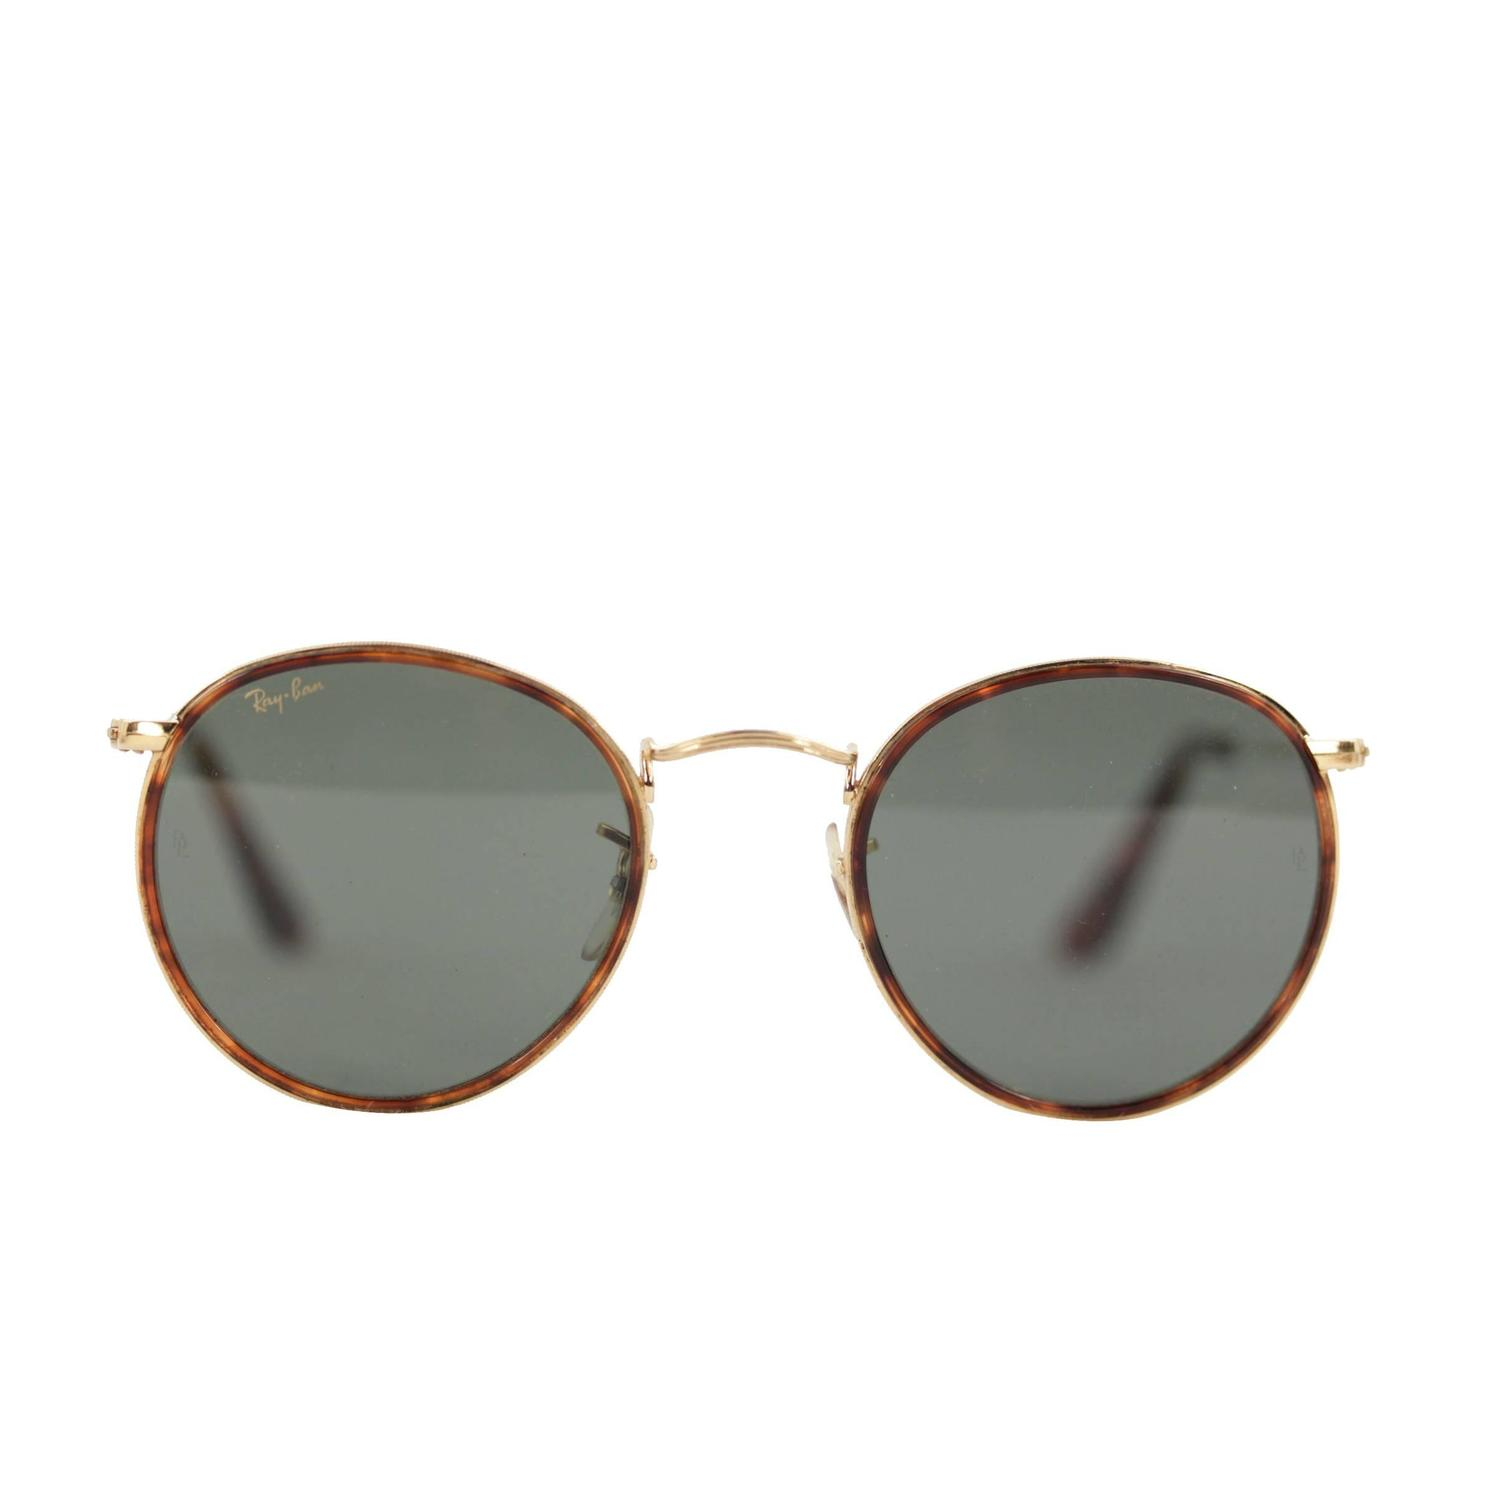 Ray Ban Vintage Glasses Frames : RAY BAN B&L Vintage Gold and tortoise look W1674 ...